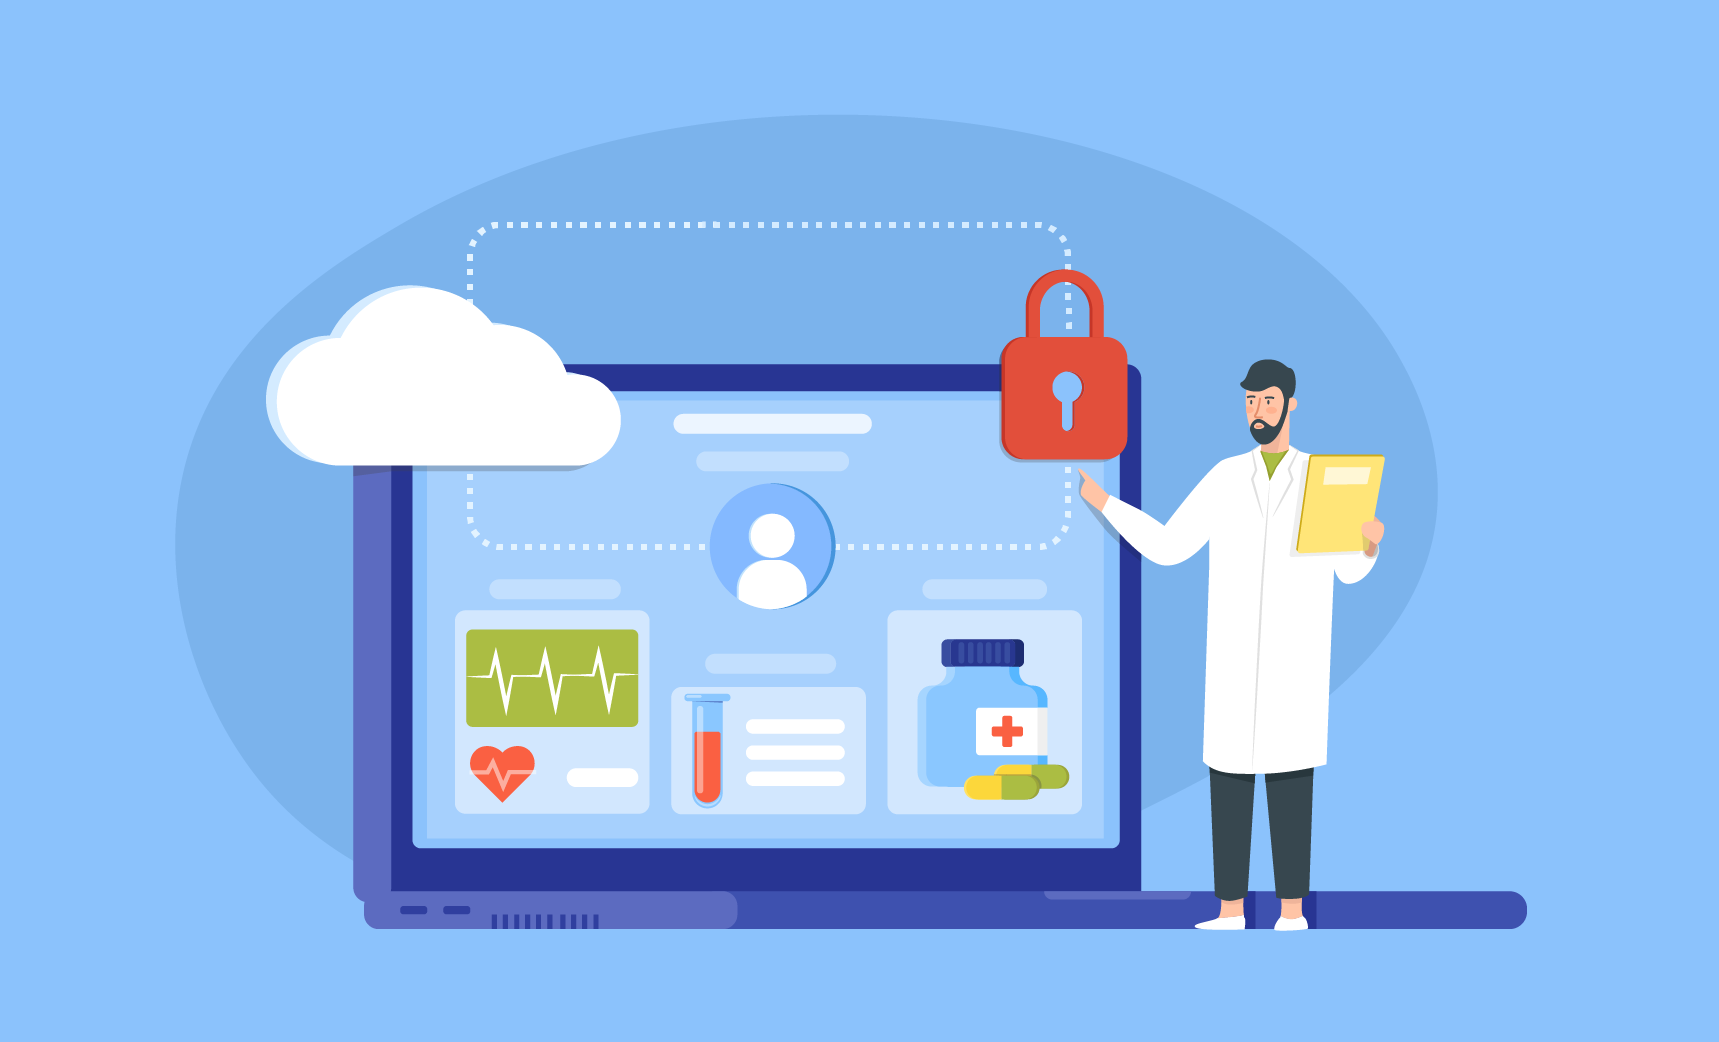 Streamlining healthcare data management and collection